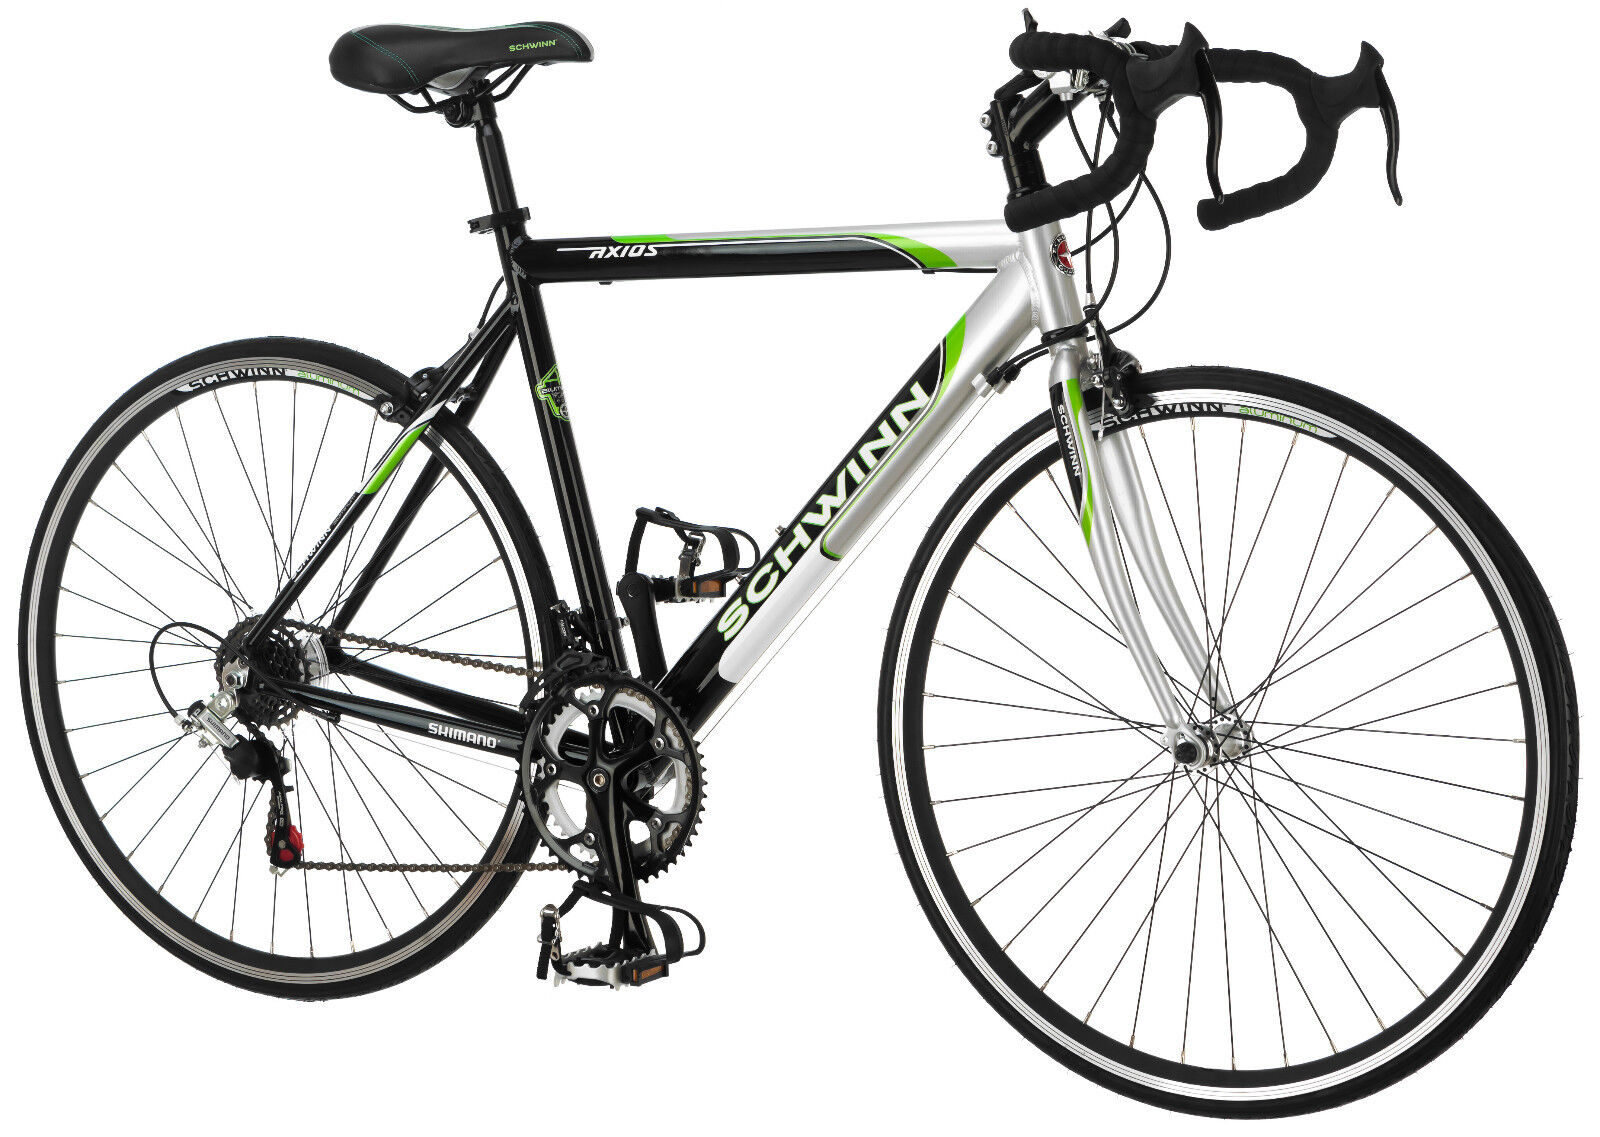 700c Schwinn Men Axios Drop Bar Road Bicycle, Silver/Black/Green, 21.5inch Frame